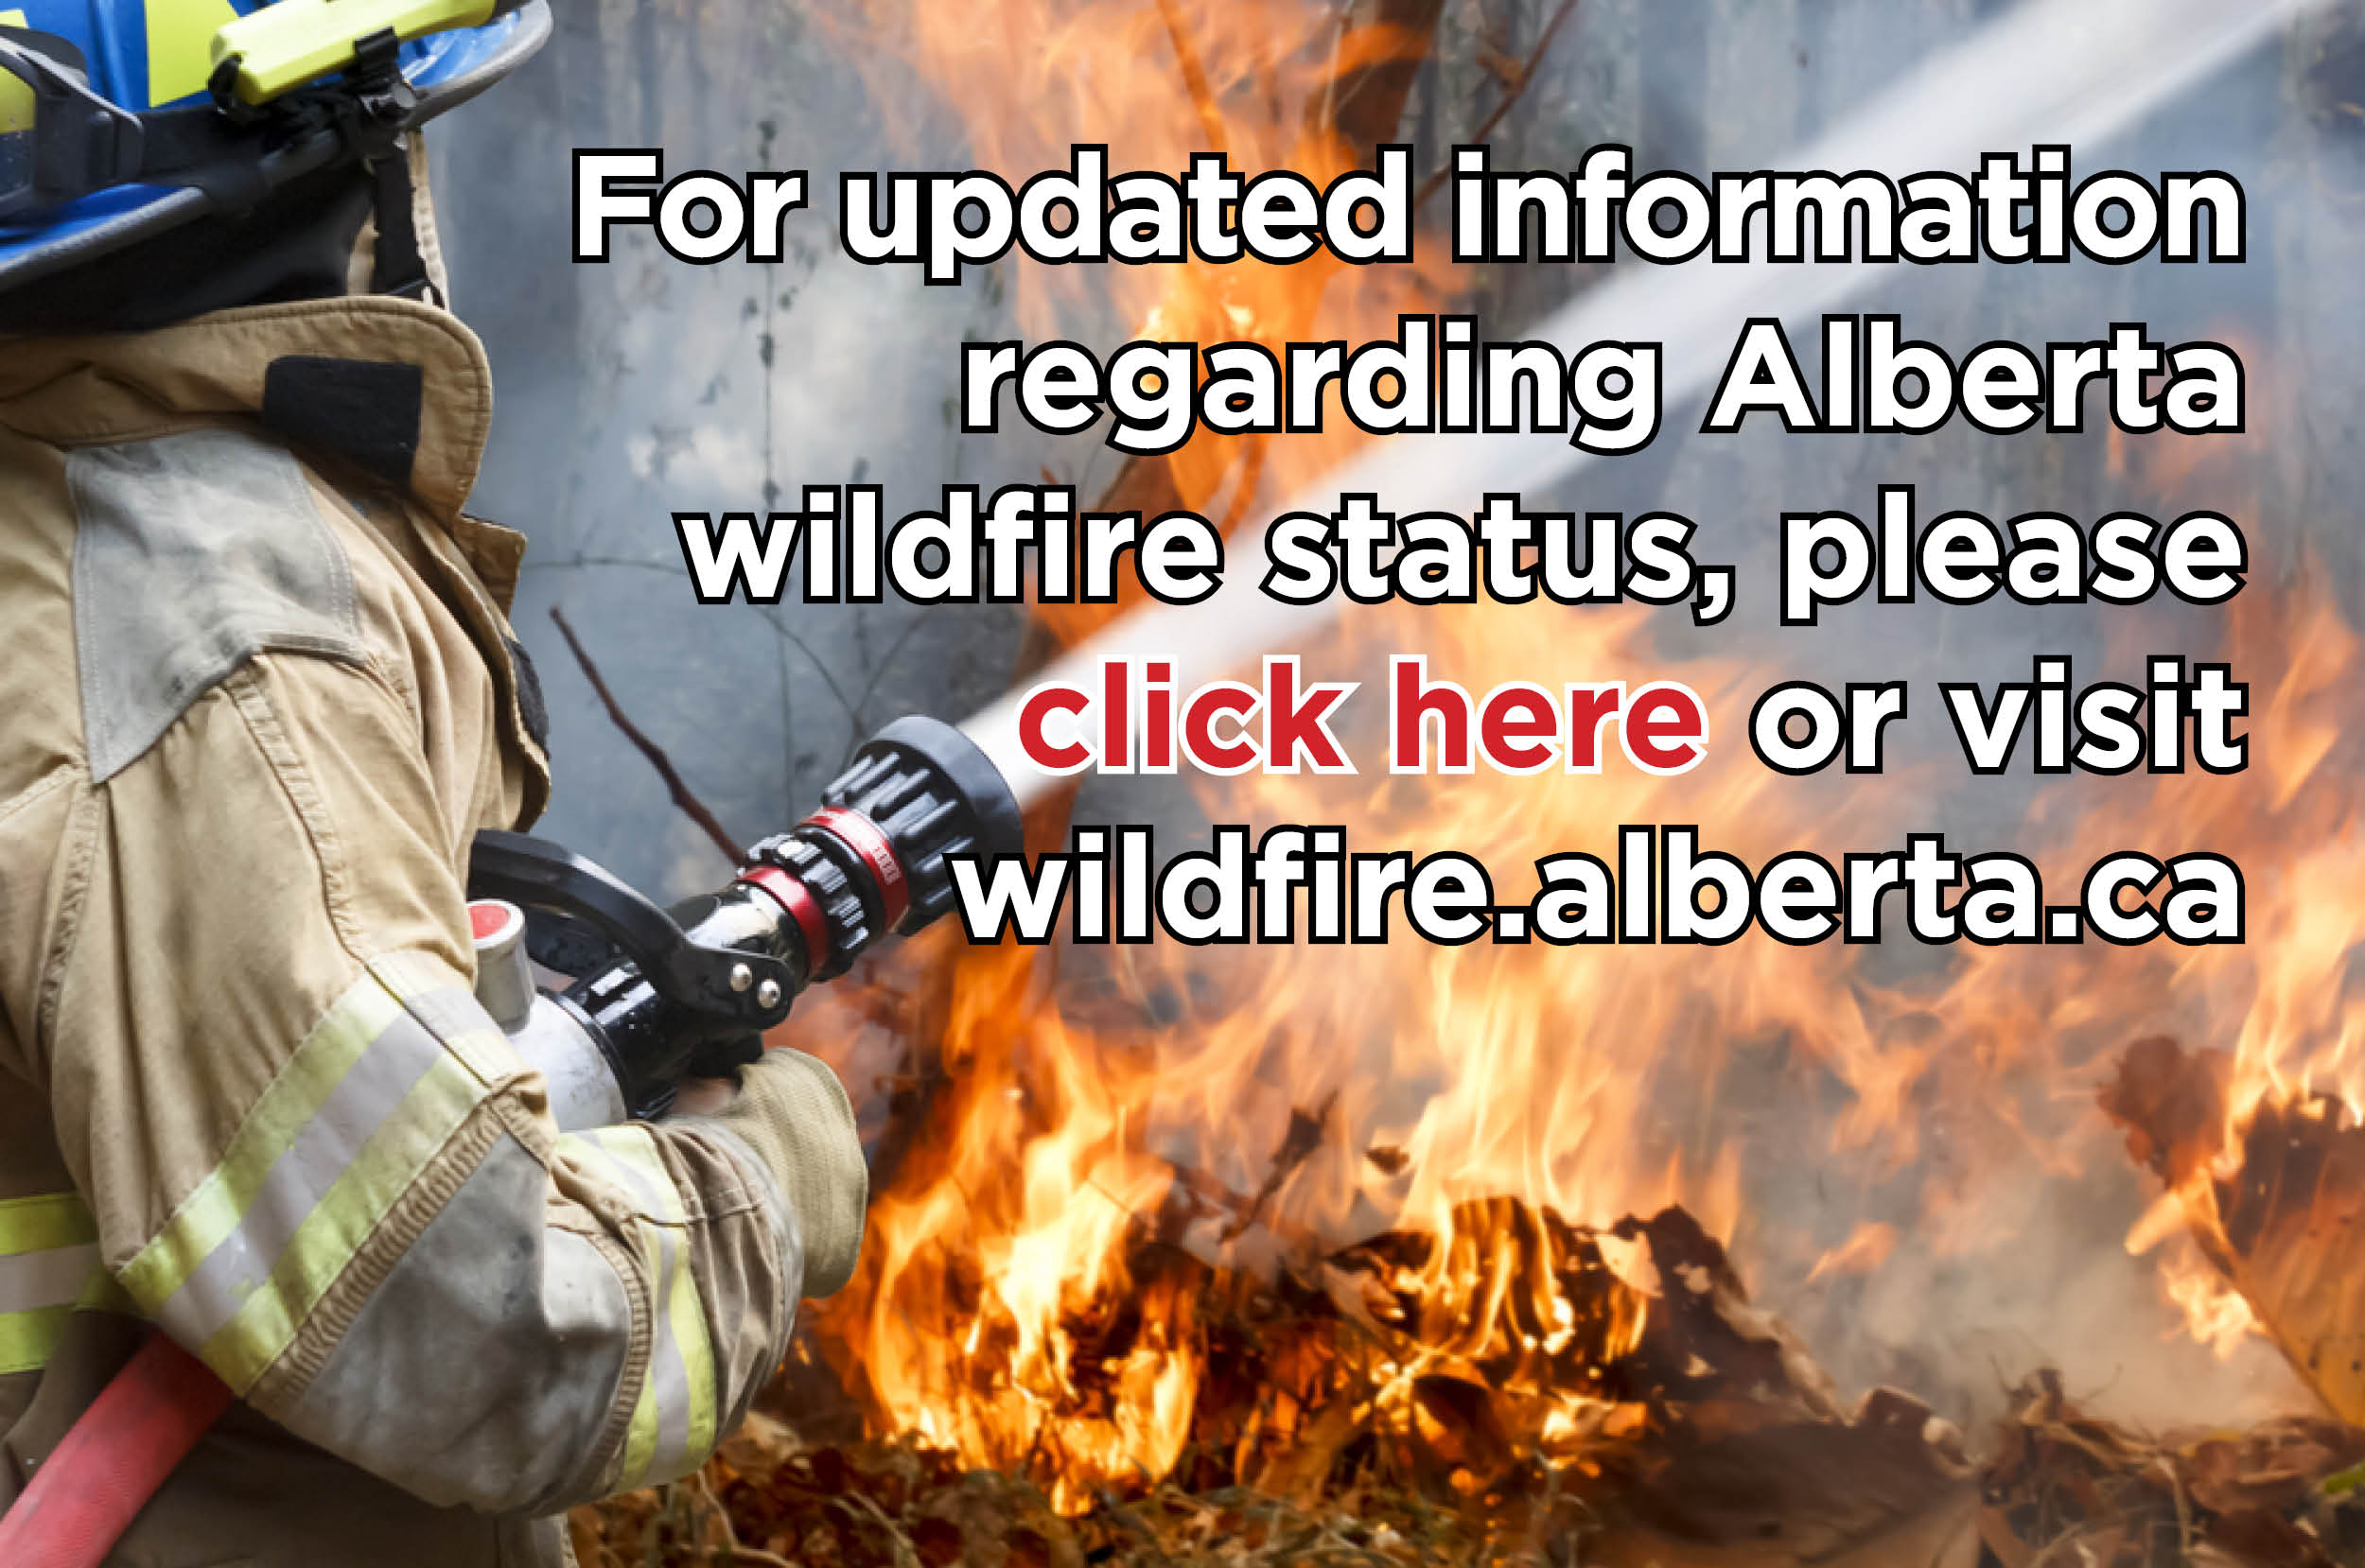 AB Wildfire